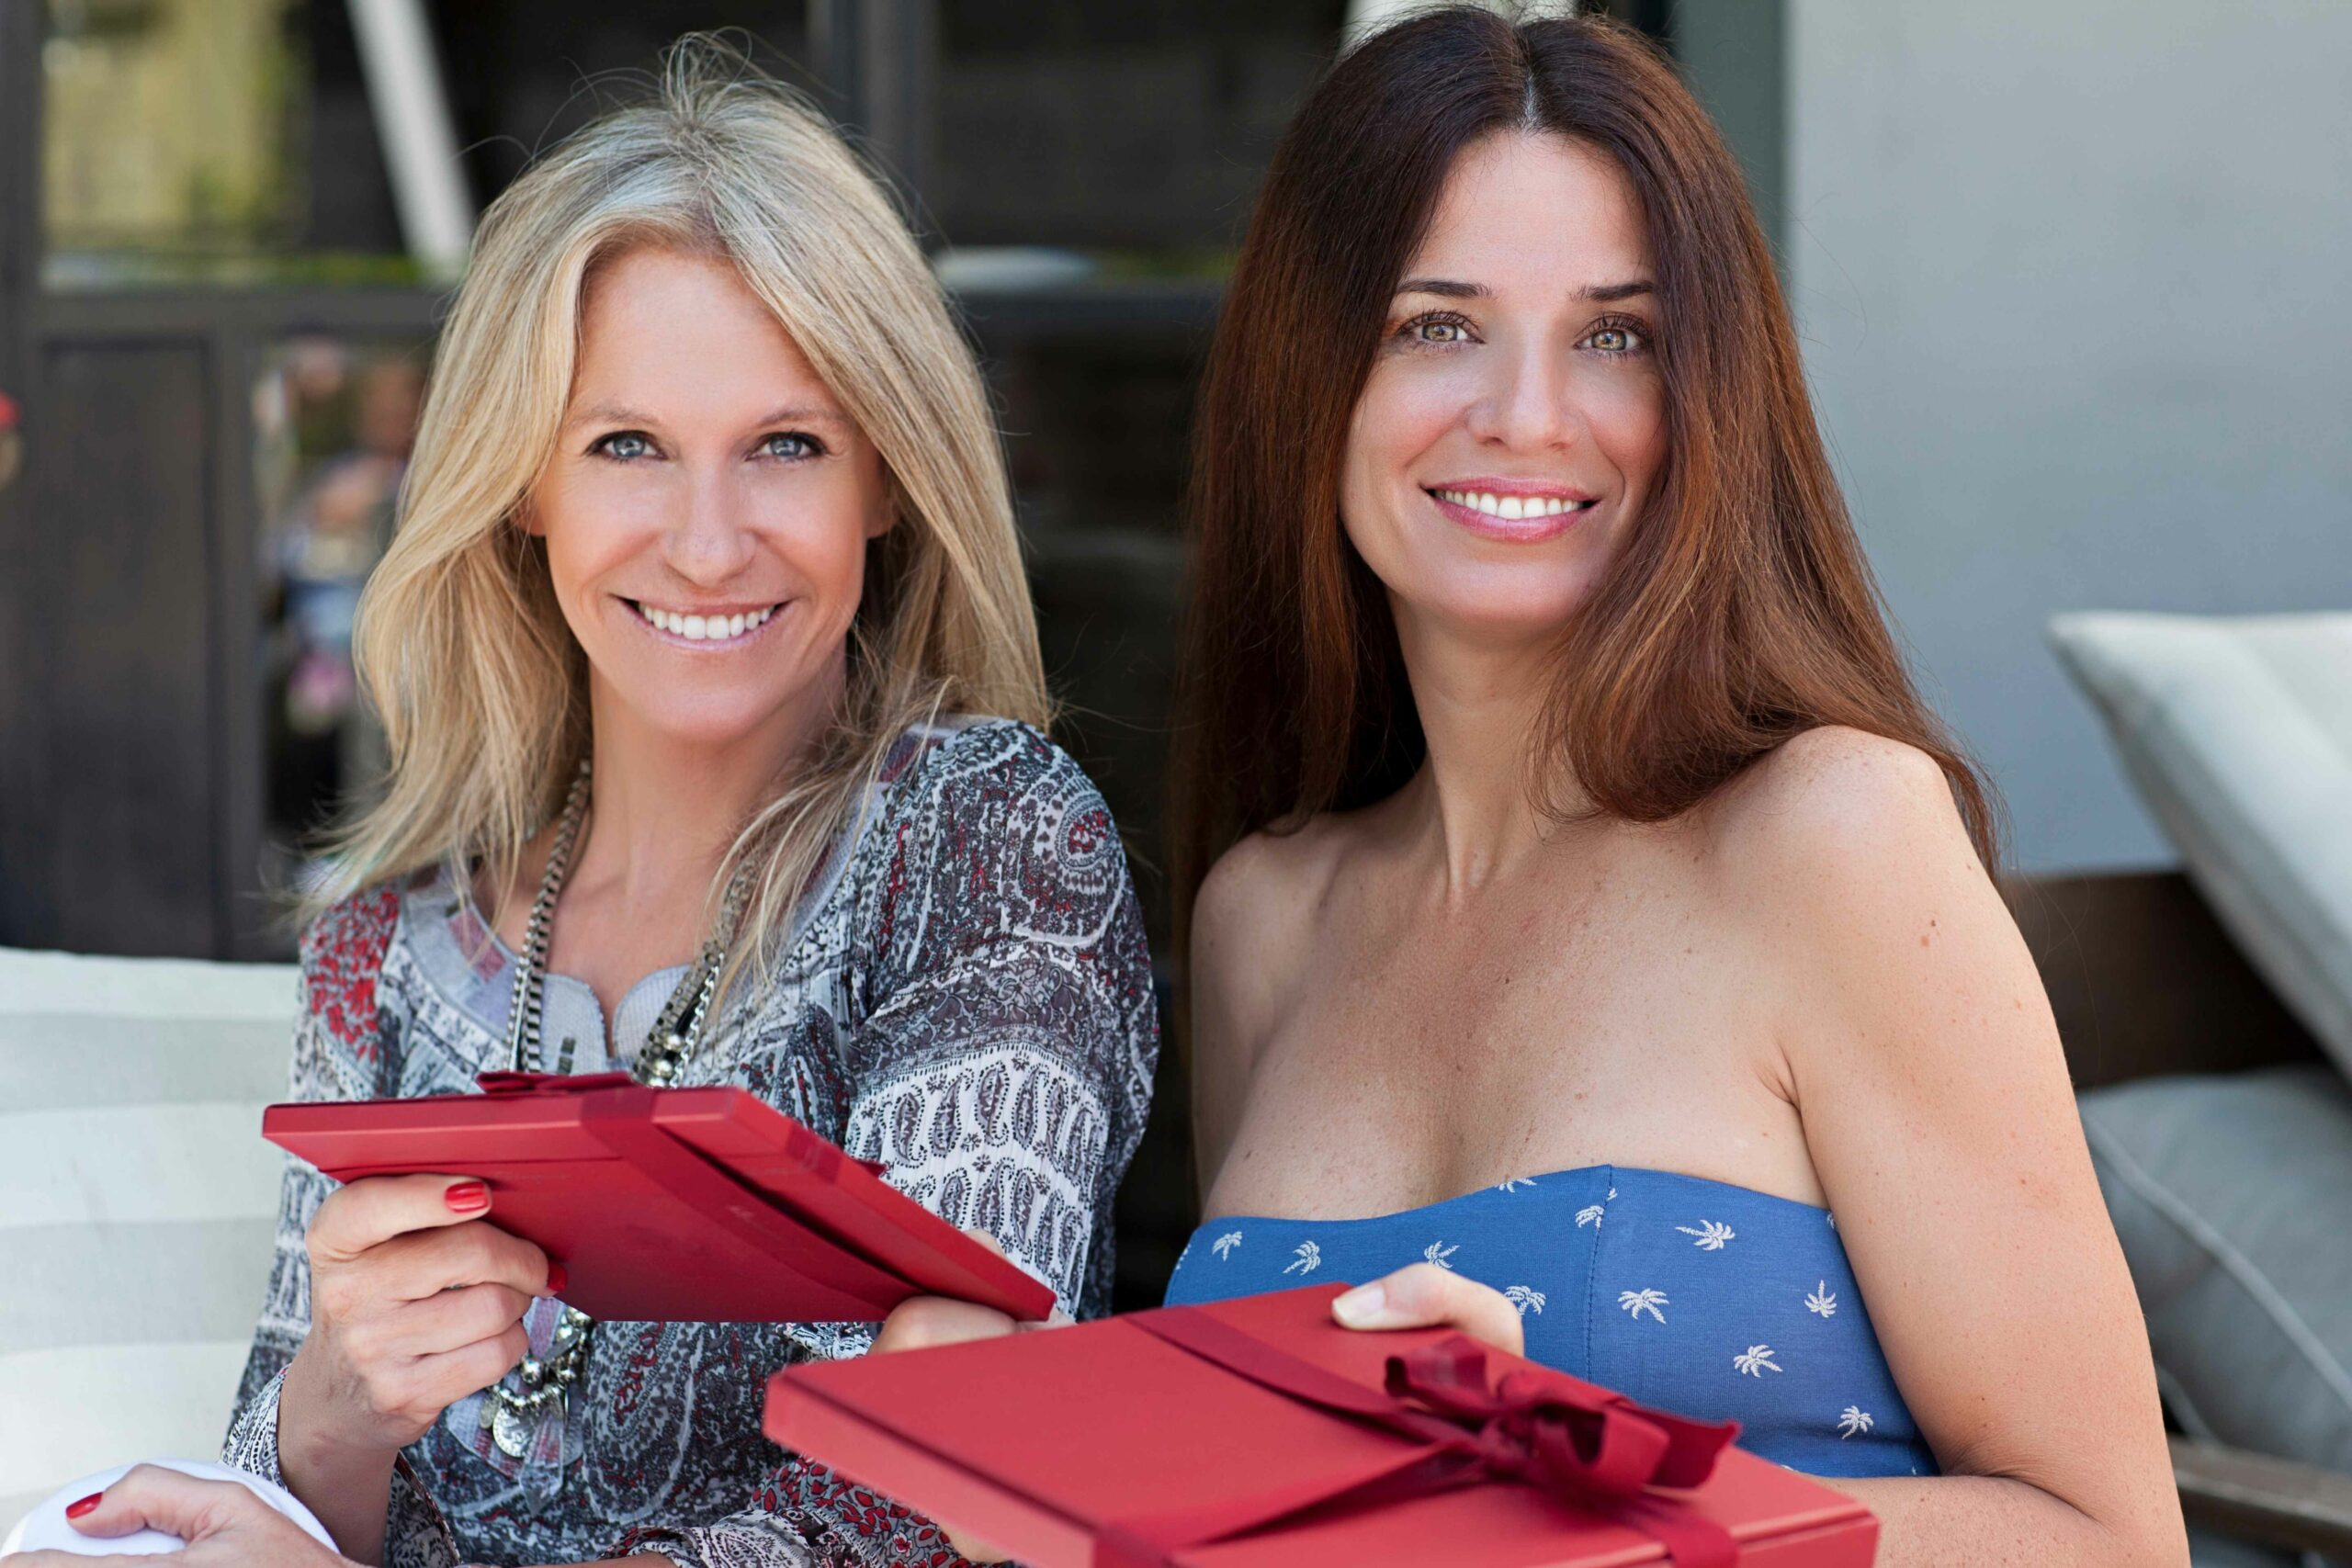 buying-gifts-for-women-the-ultimate-guide-for-buying-&-giving-gifts